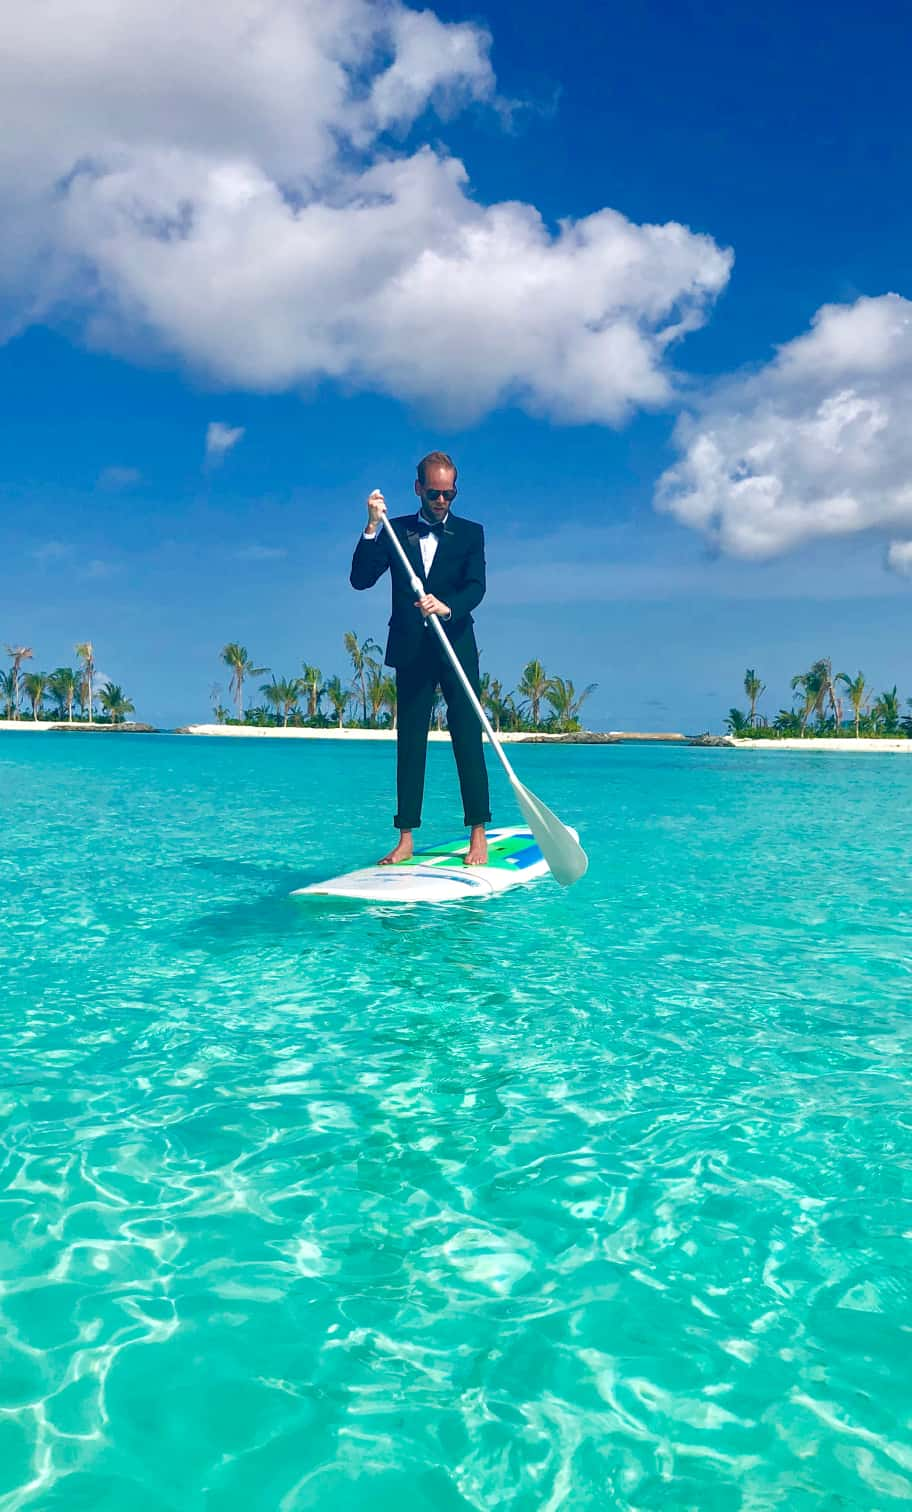 Garrett stands on a paddle board in the Maldives.